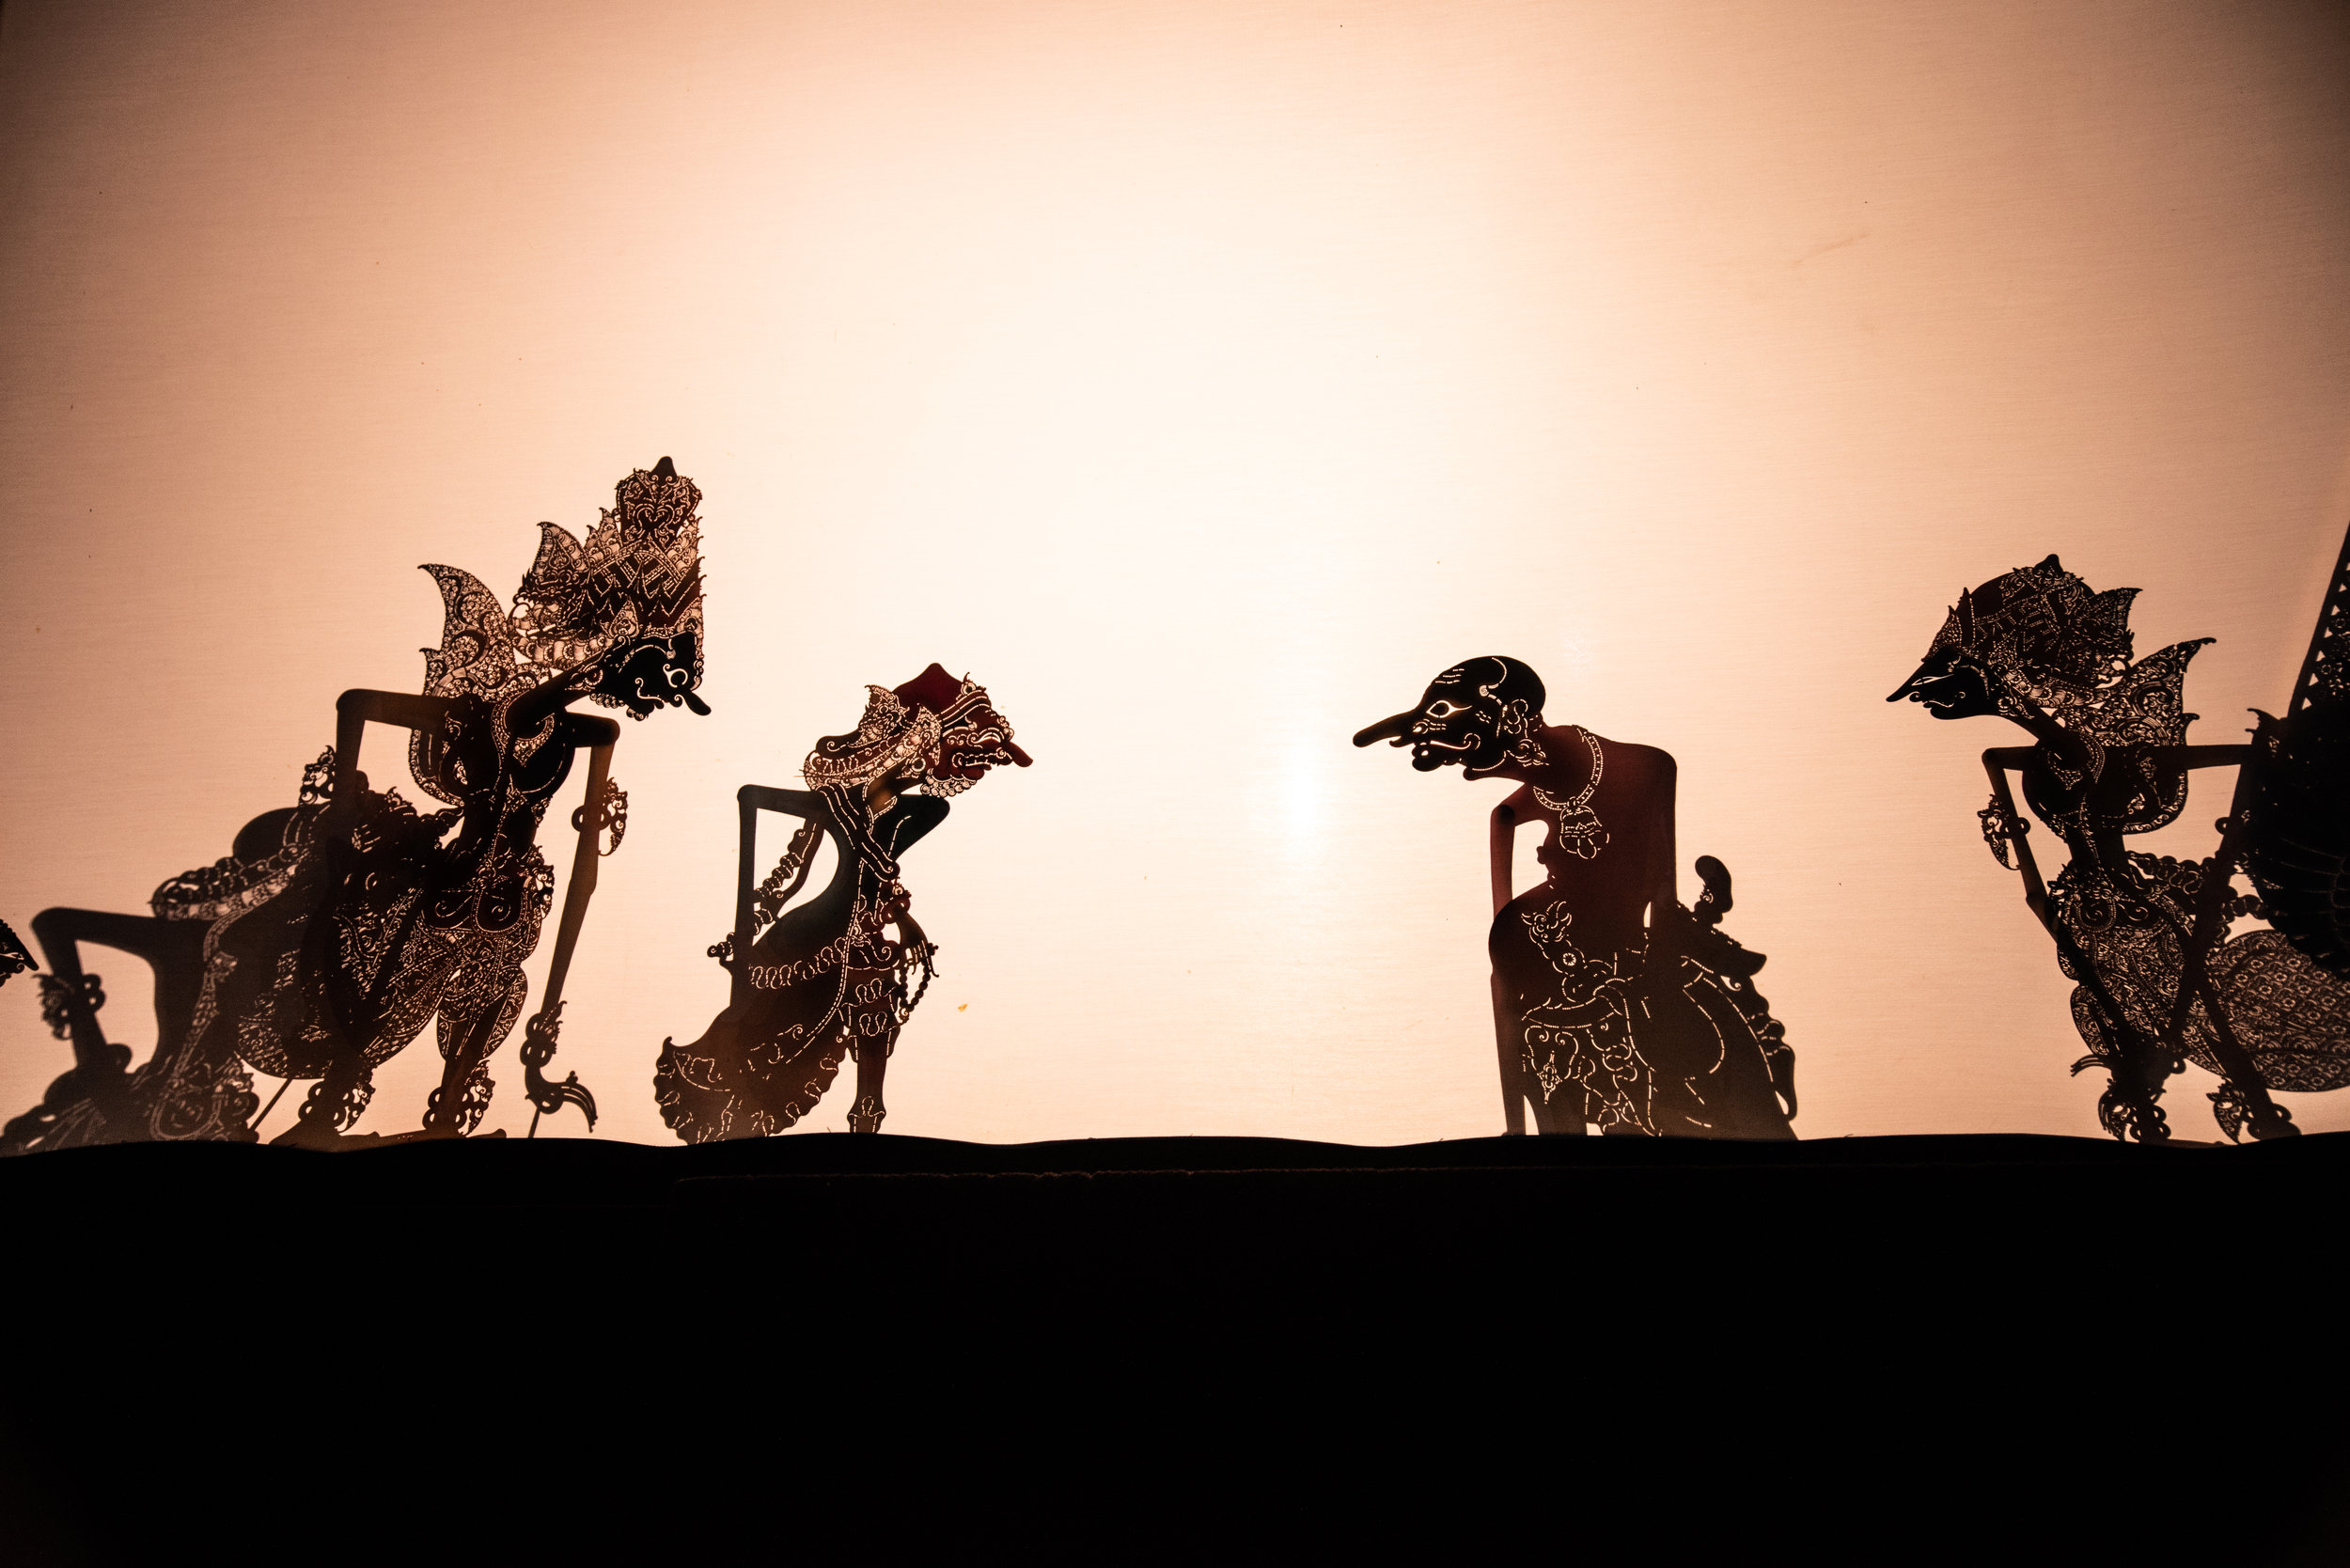 The Wayang Kulit shadow puppets tell a story